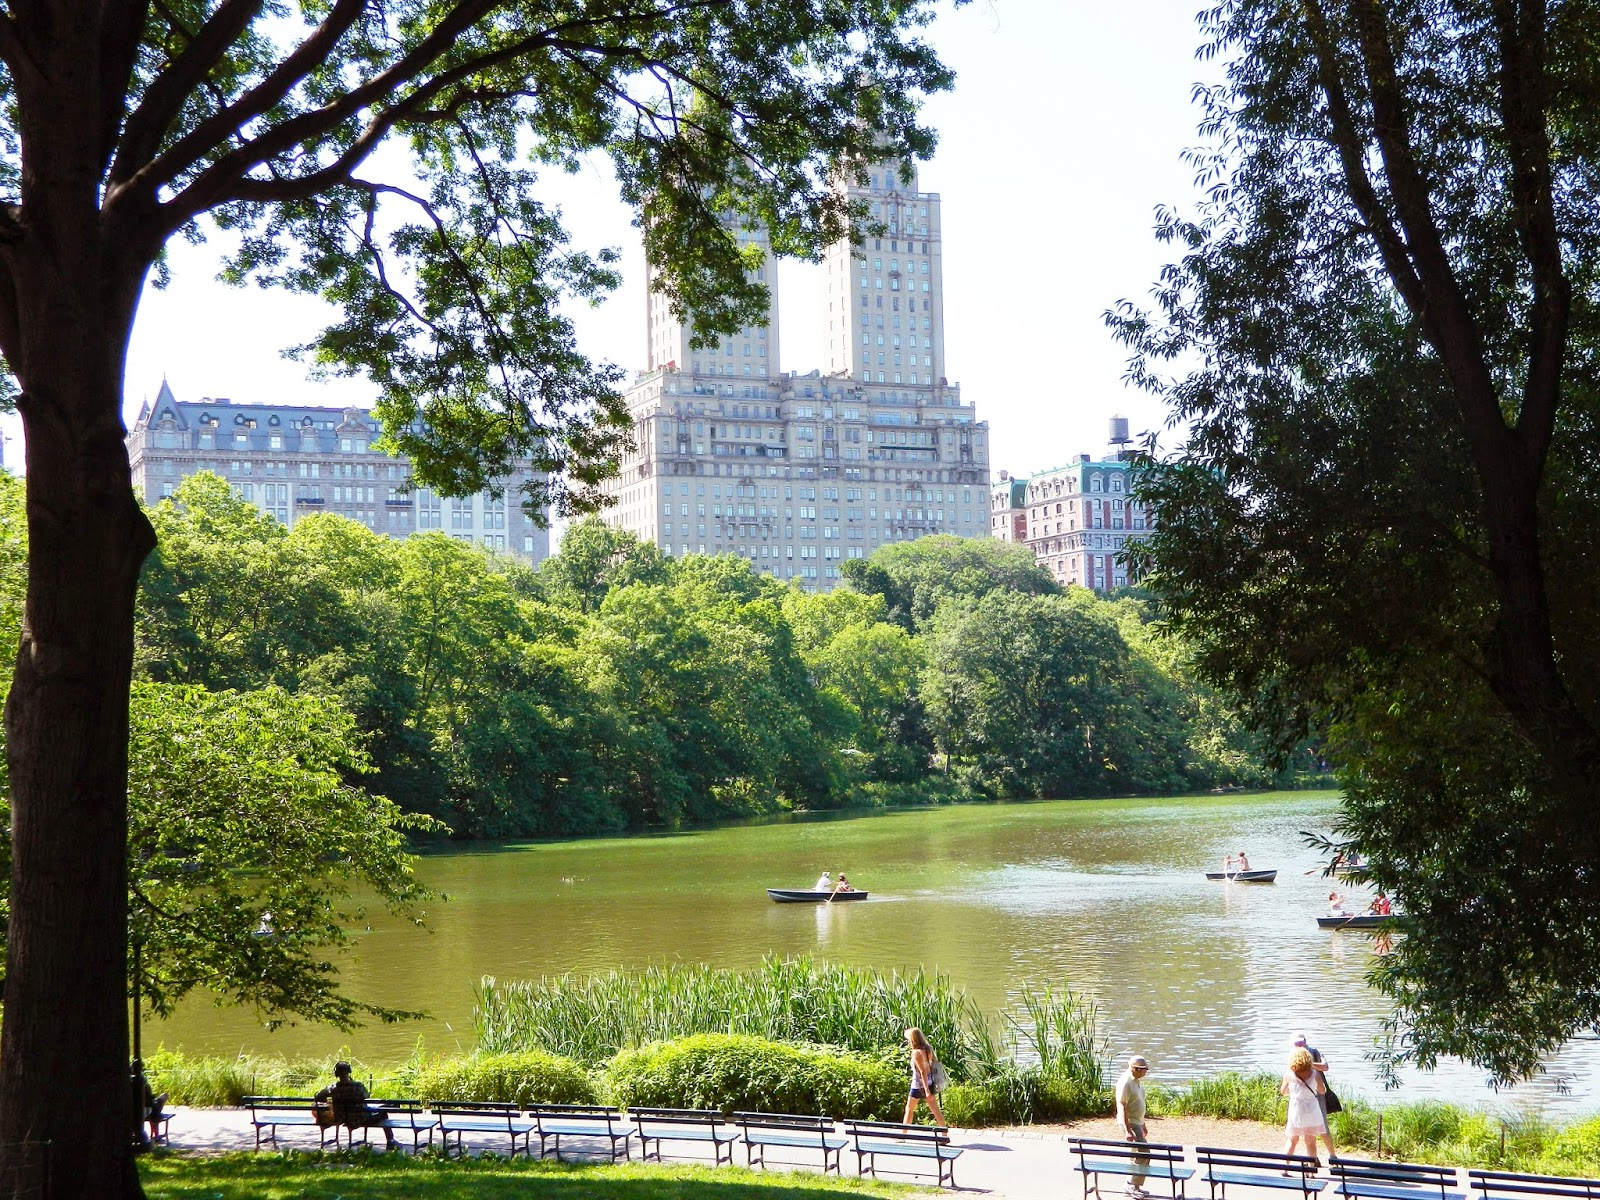 new york city central park architecture  boats trees nature people